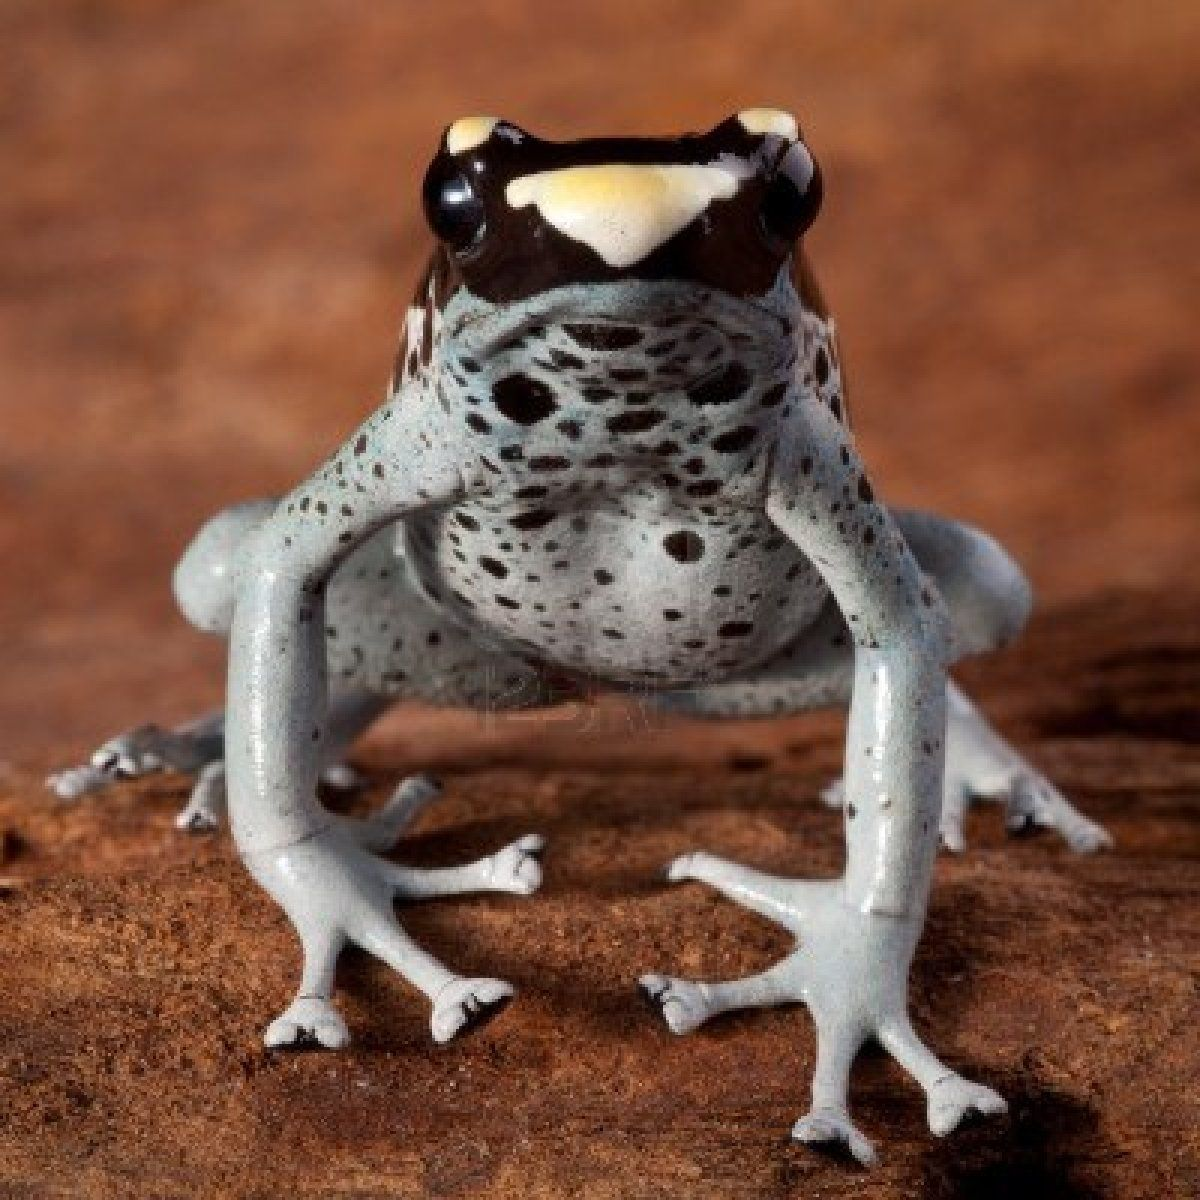 You Re Amazing Animals: Dart Frog Dendrobates Tinctorius, Beautiful Animal Of The